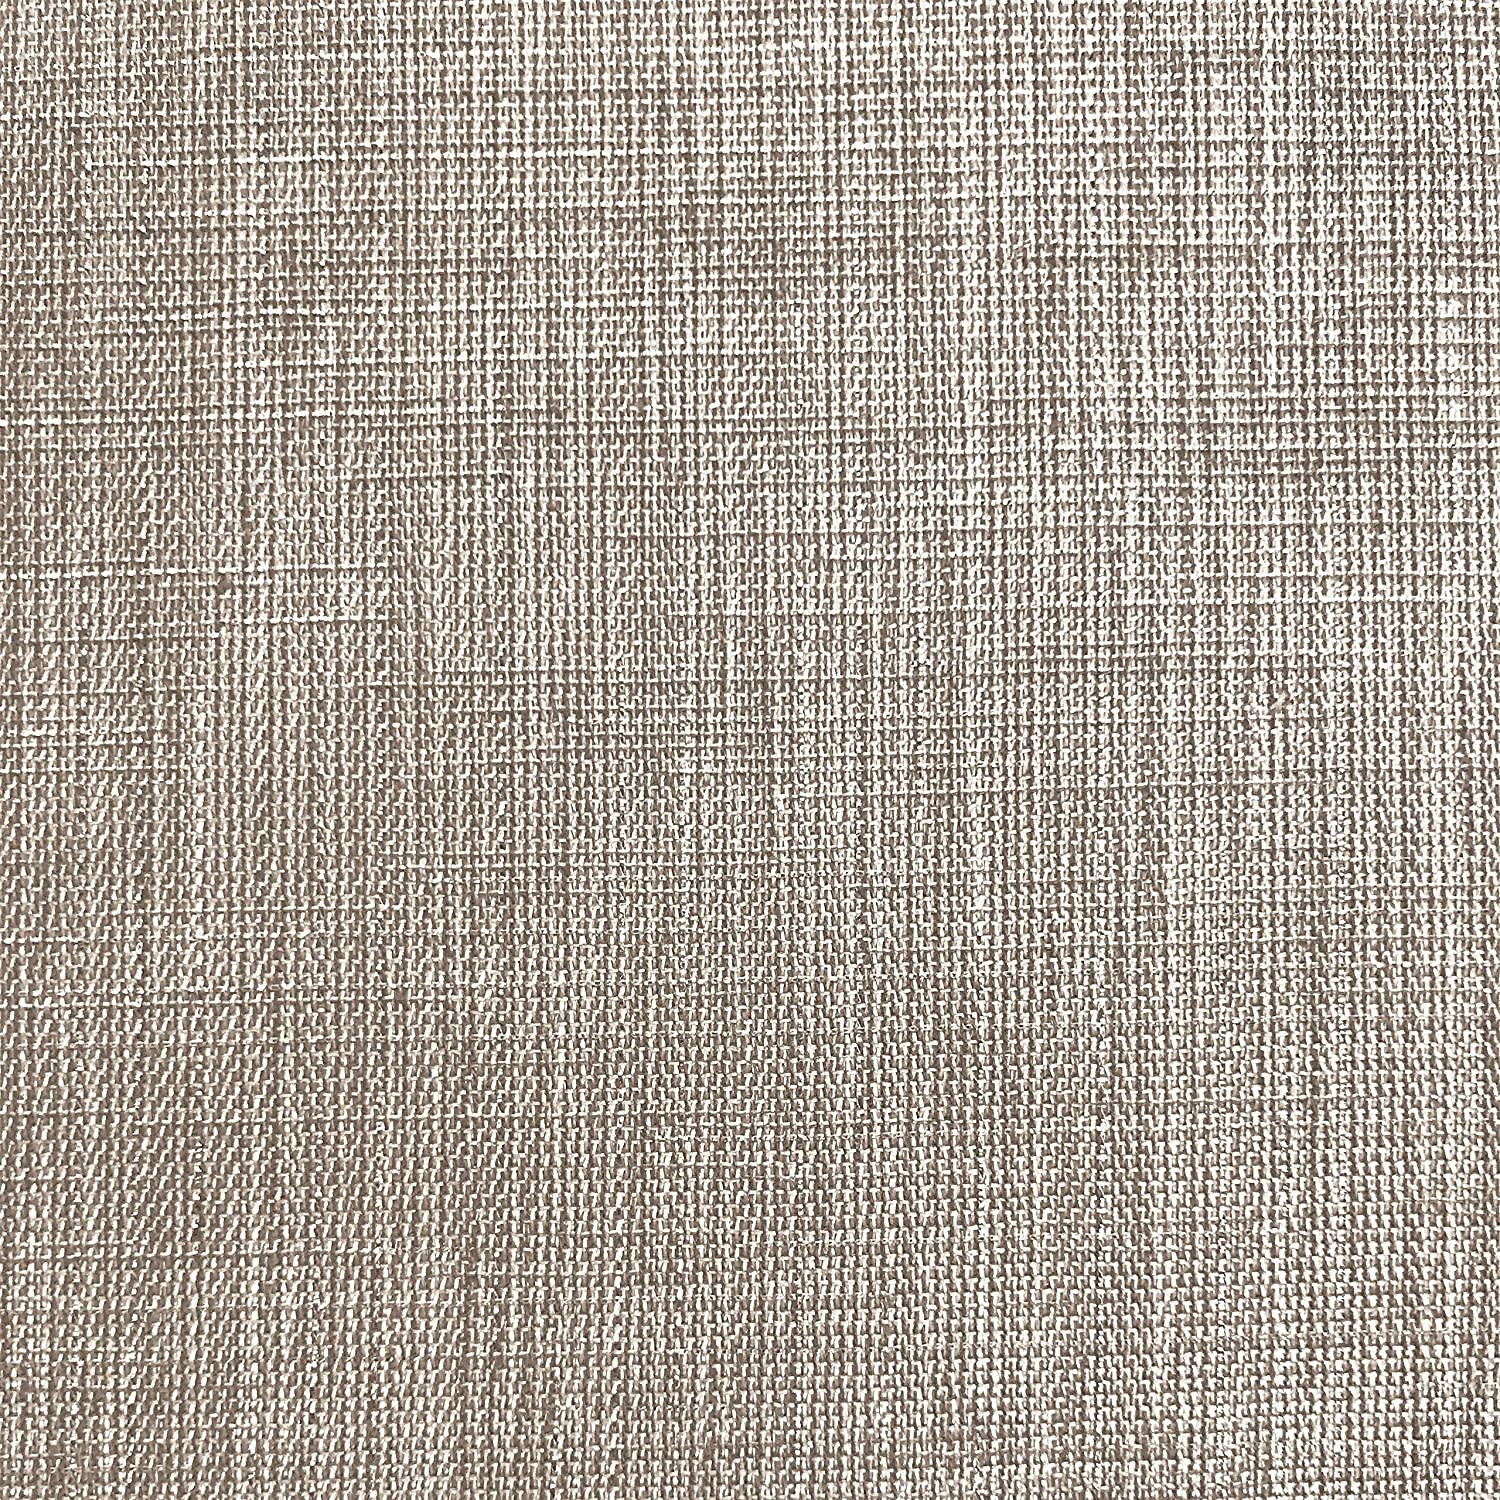 Eclipse Metallic Taupe Tablecloth 60 x 120